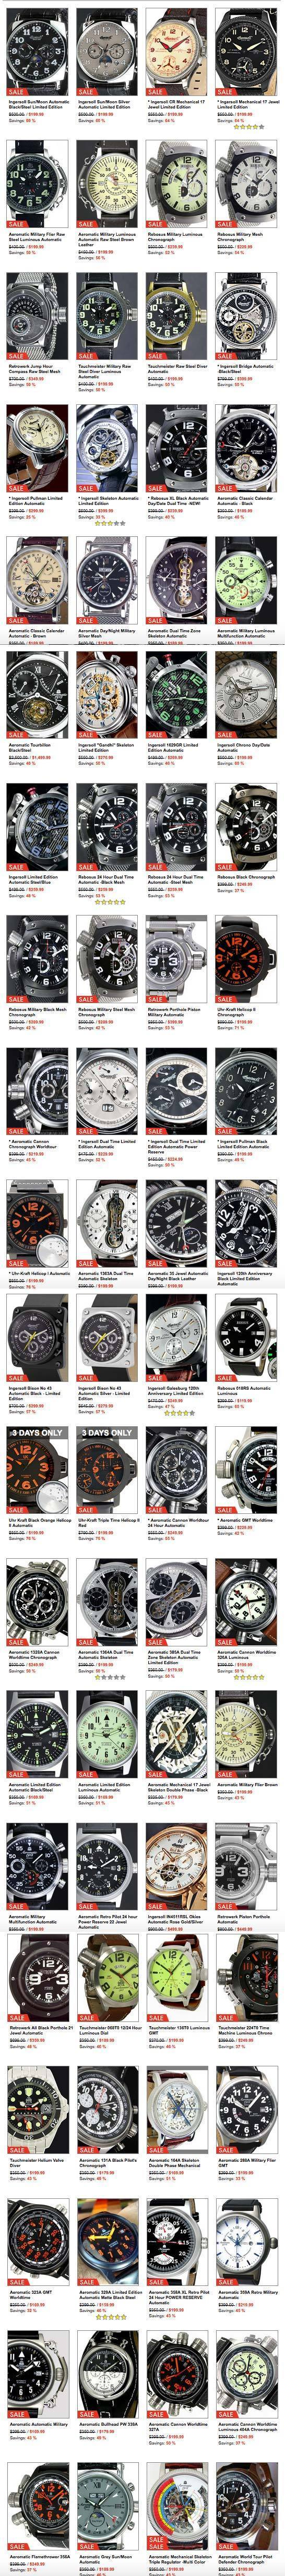 germanwatches